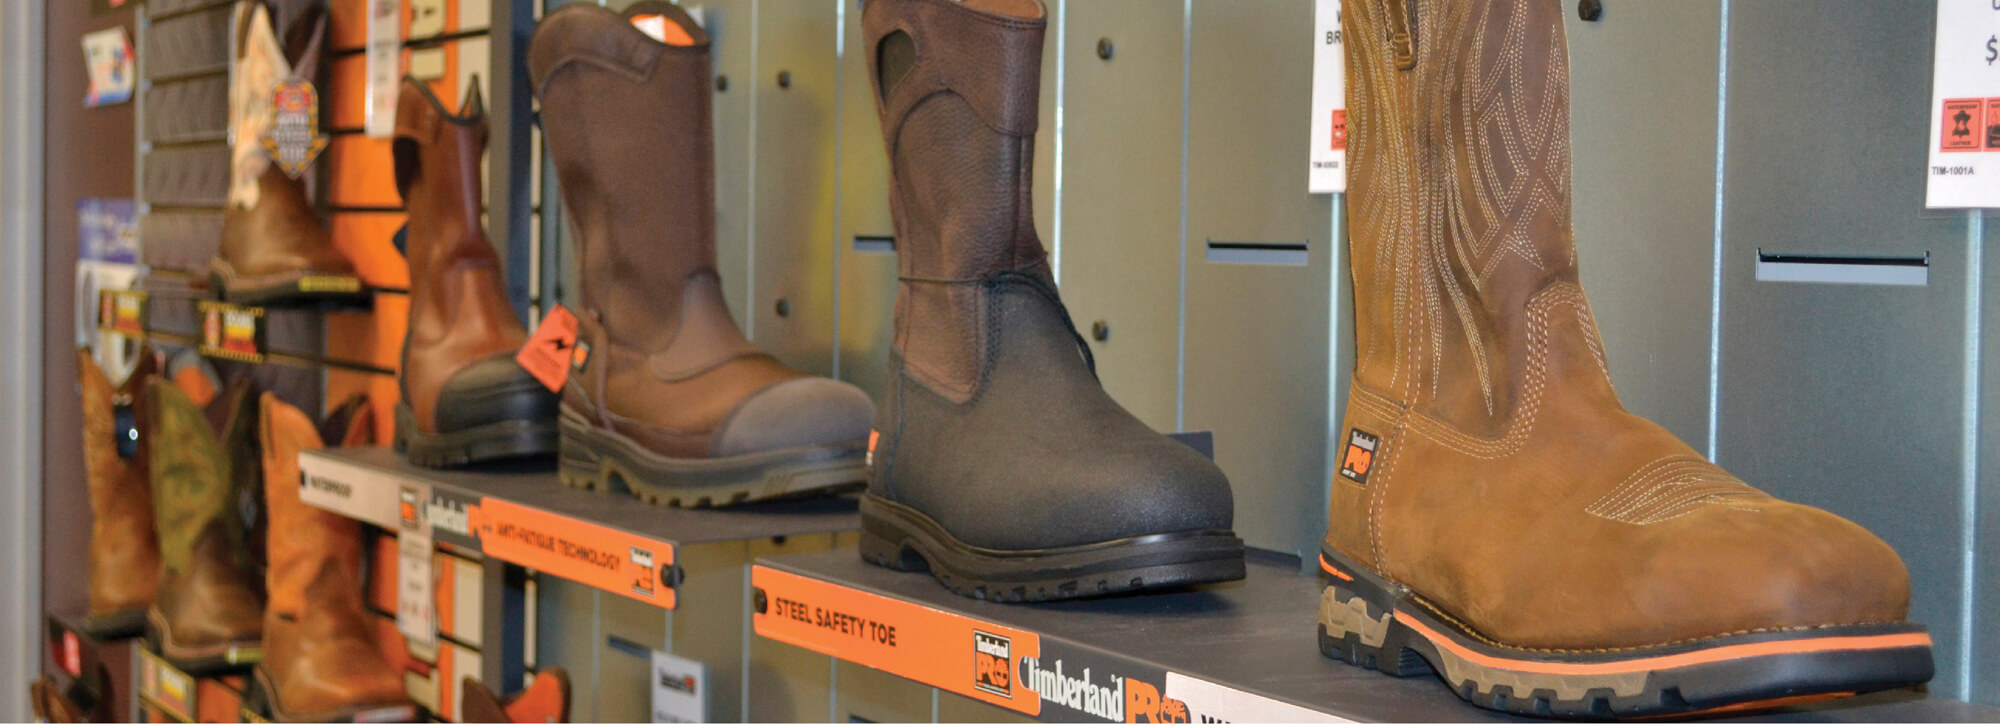 7a859dd8b20 FR Clothing, Work Boot, and PPE Retail Stores | Wayne Workwear